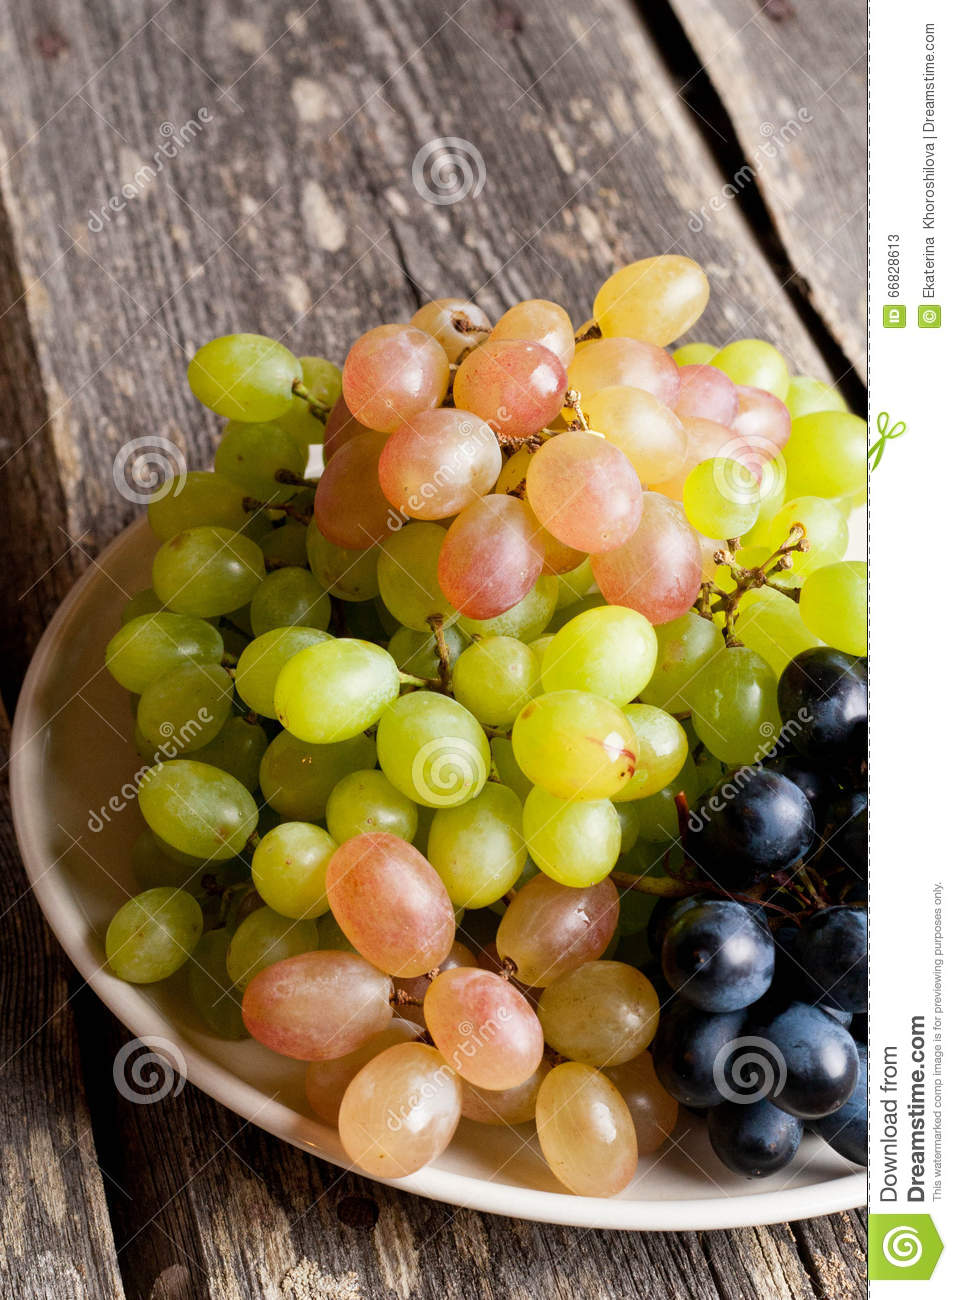 Grapes on a plate on a old wooden table.